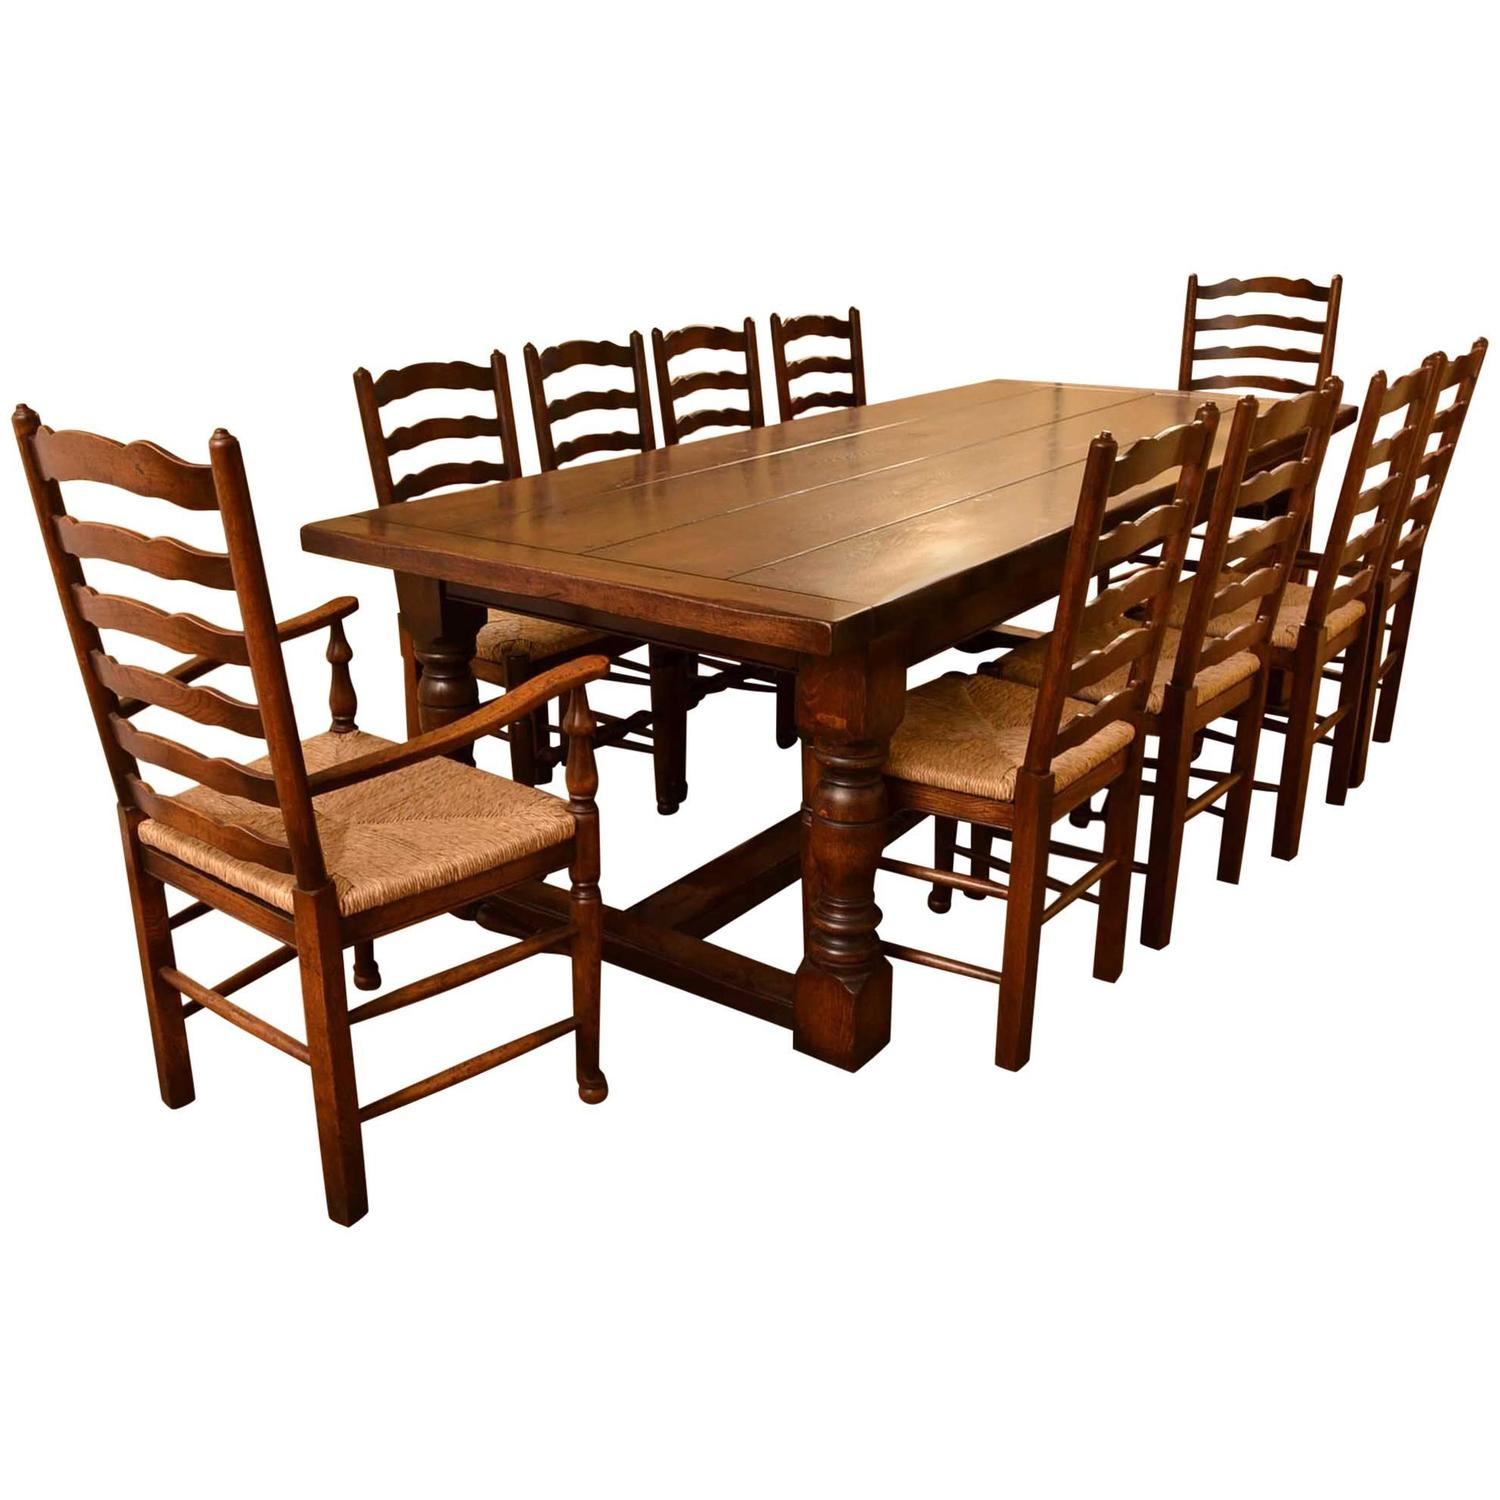 Bespoke solid oak refectory dining table 10 chairs for 10 seating dining table